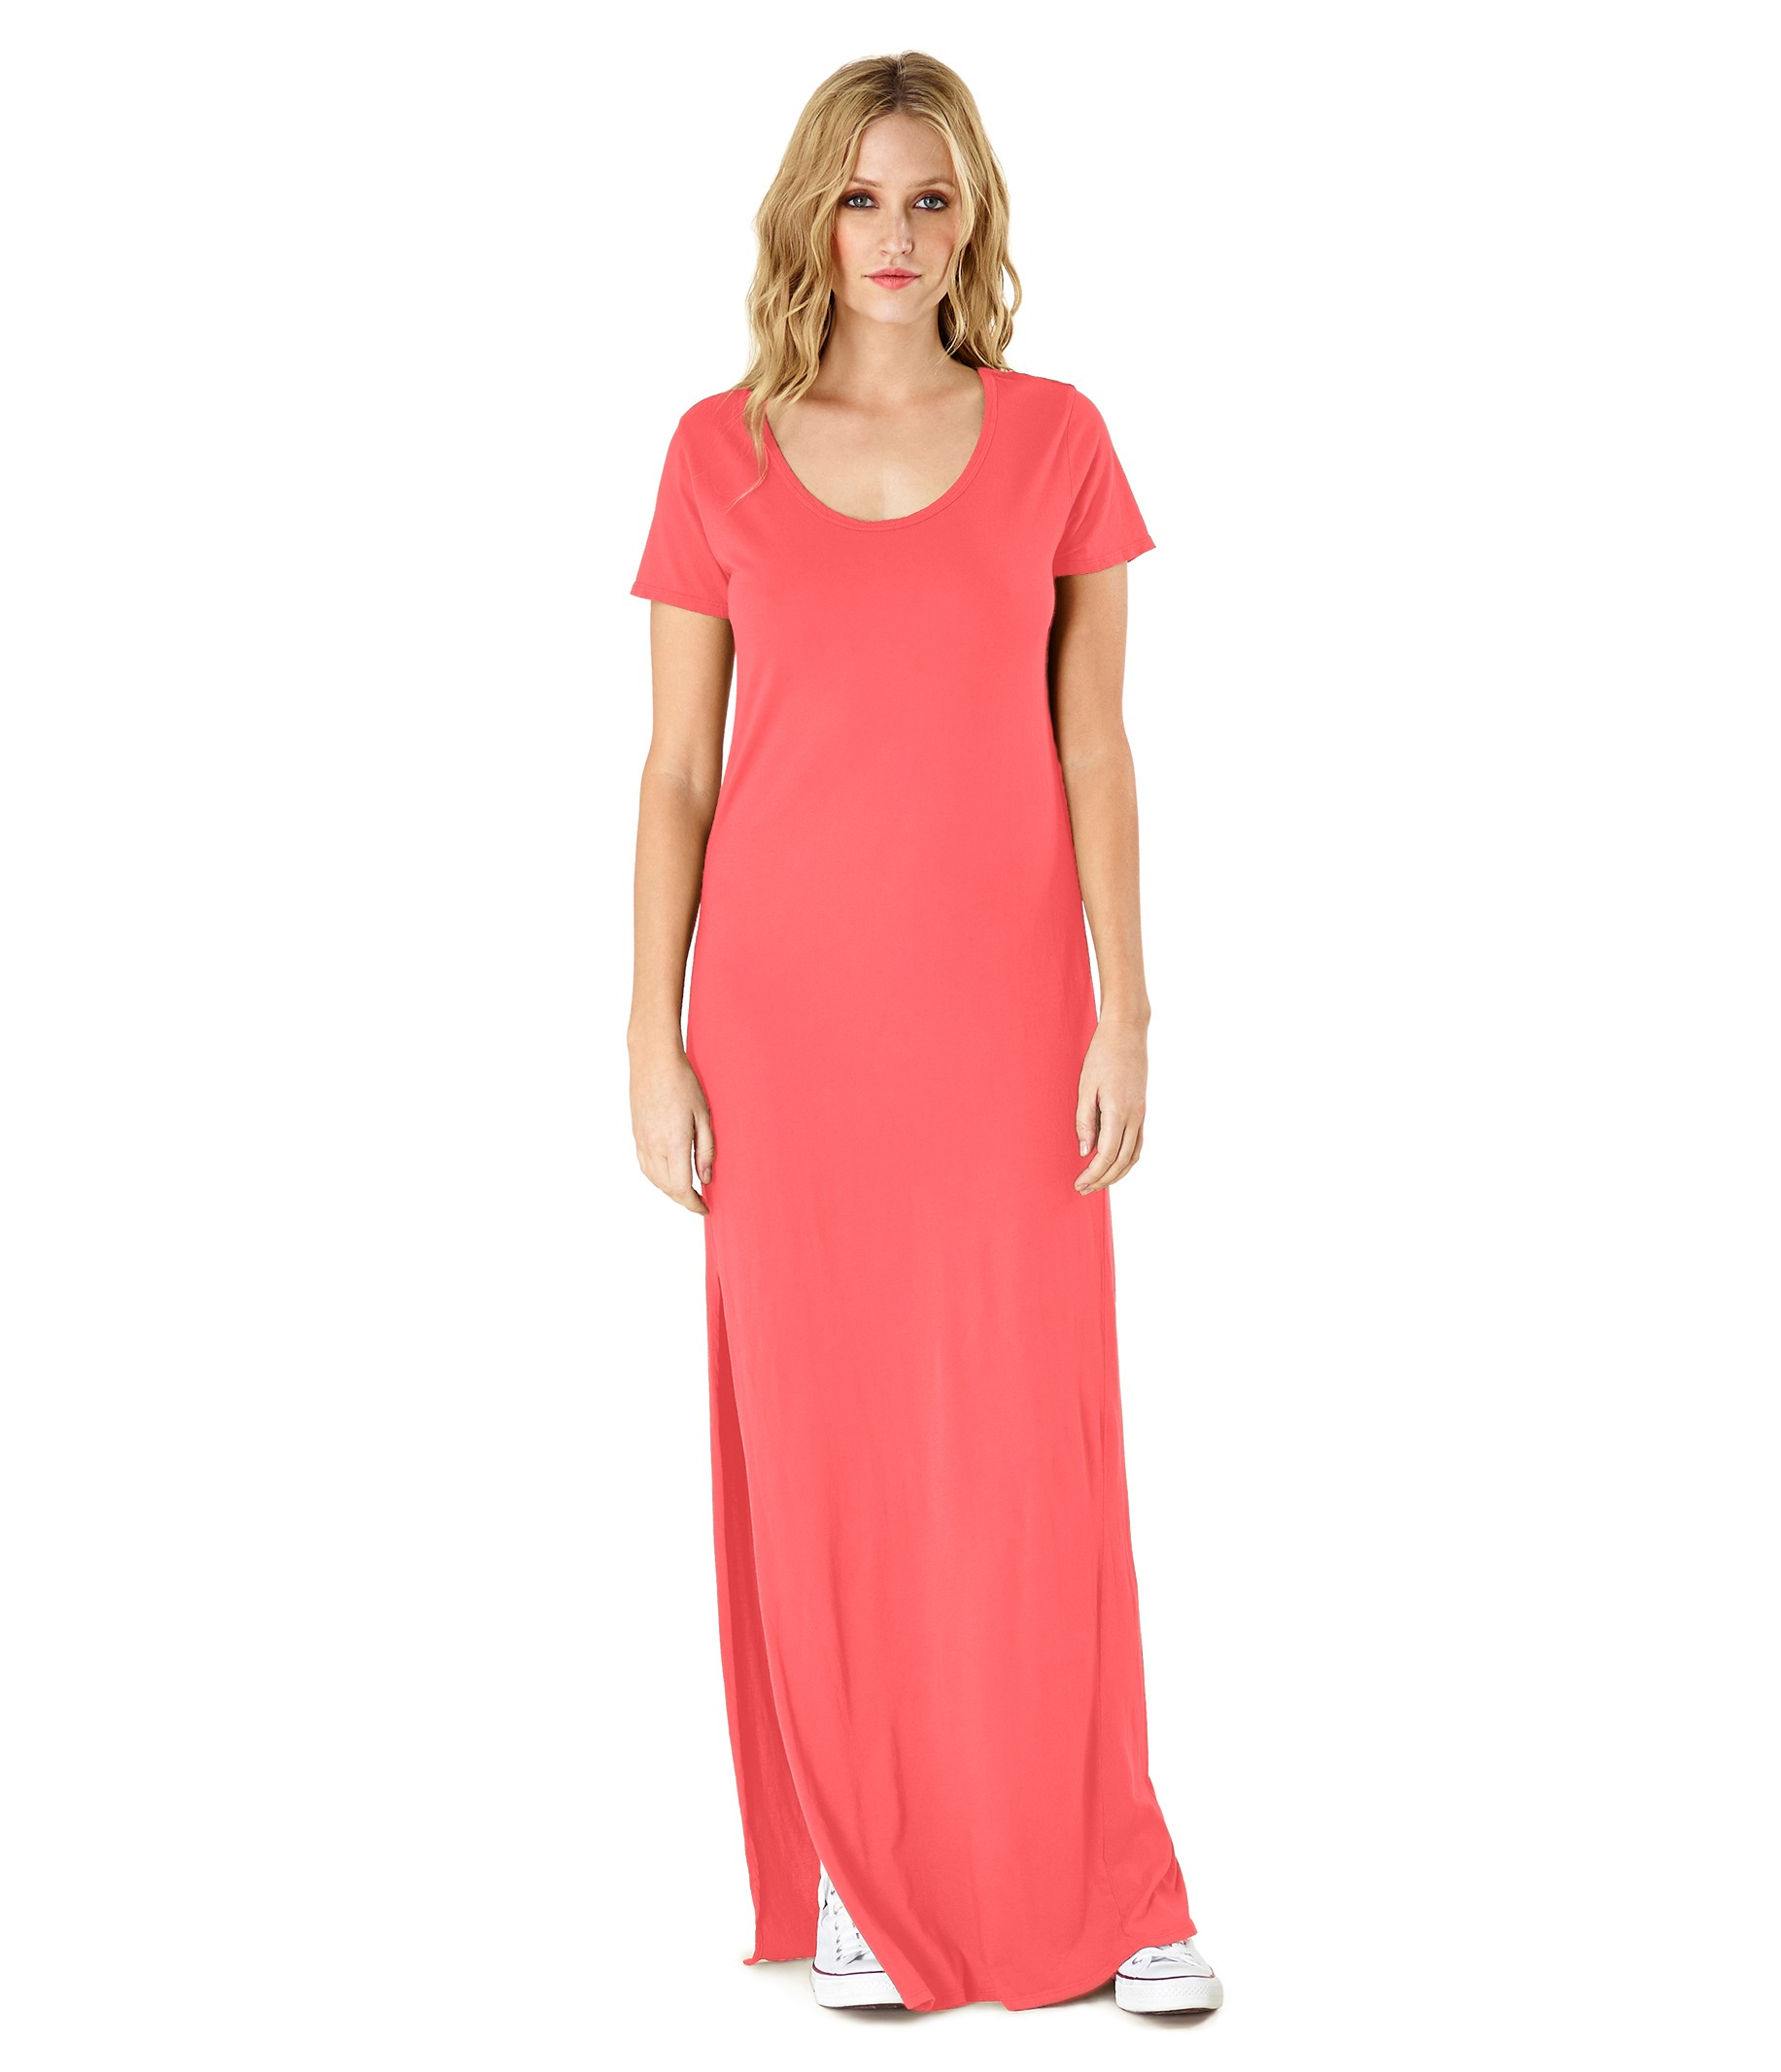 Michael stars t shirt maxi dress with side slit in orange for Michael stars t shirts on sale